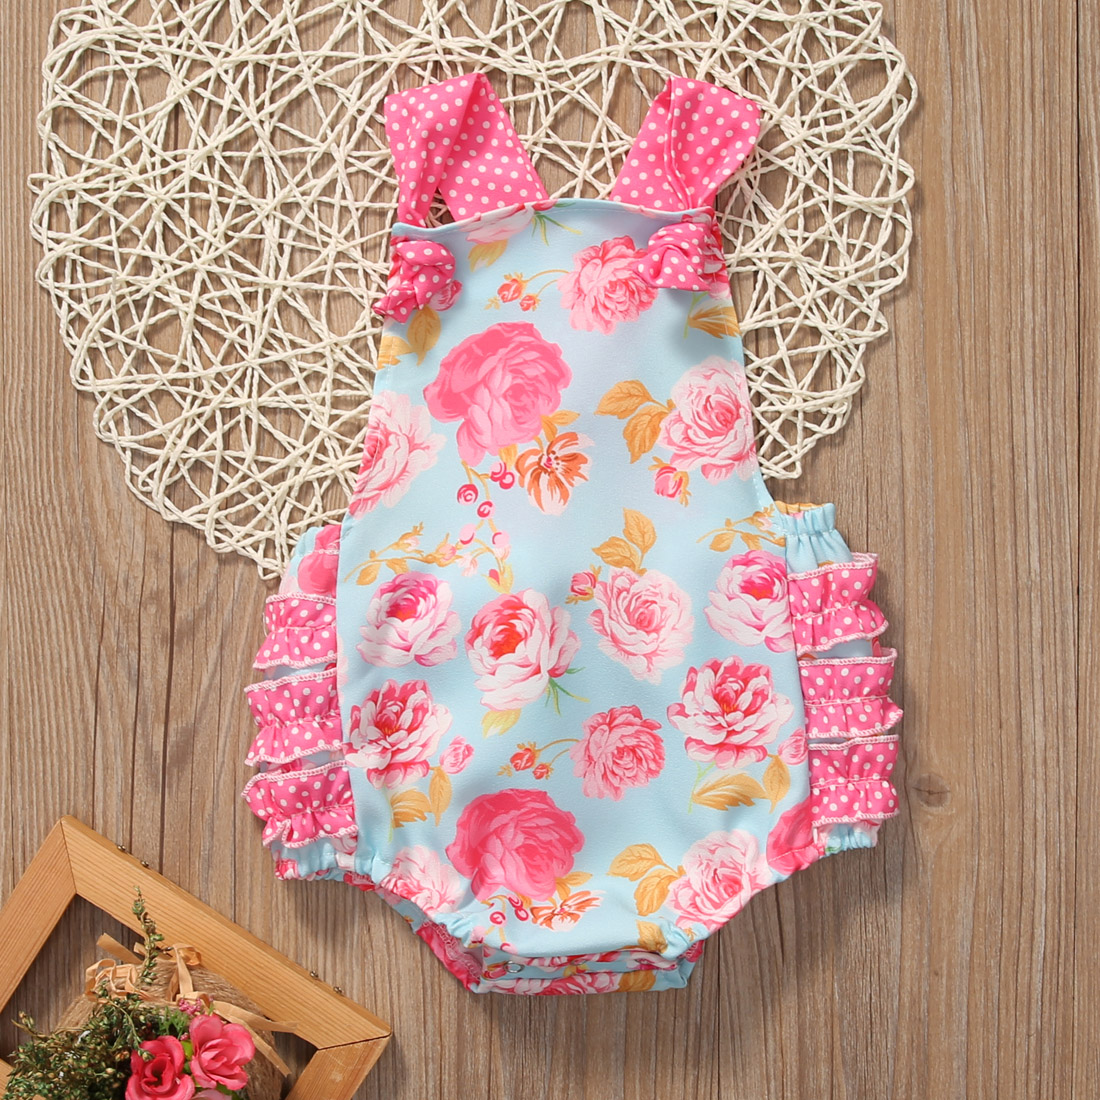 a80b6d0b13a Floral Baby Halter Romper Newborn Infant Baby Girls Clothes Summer  Sleeveless Ruffles Jumpsuit One Pieces Outfits Sunsuit 0 18M-in Rompers  from Mother ...